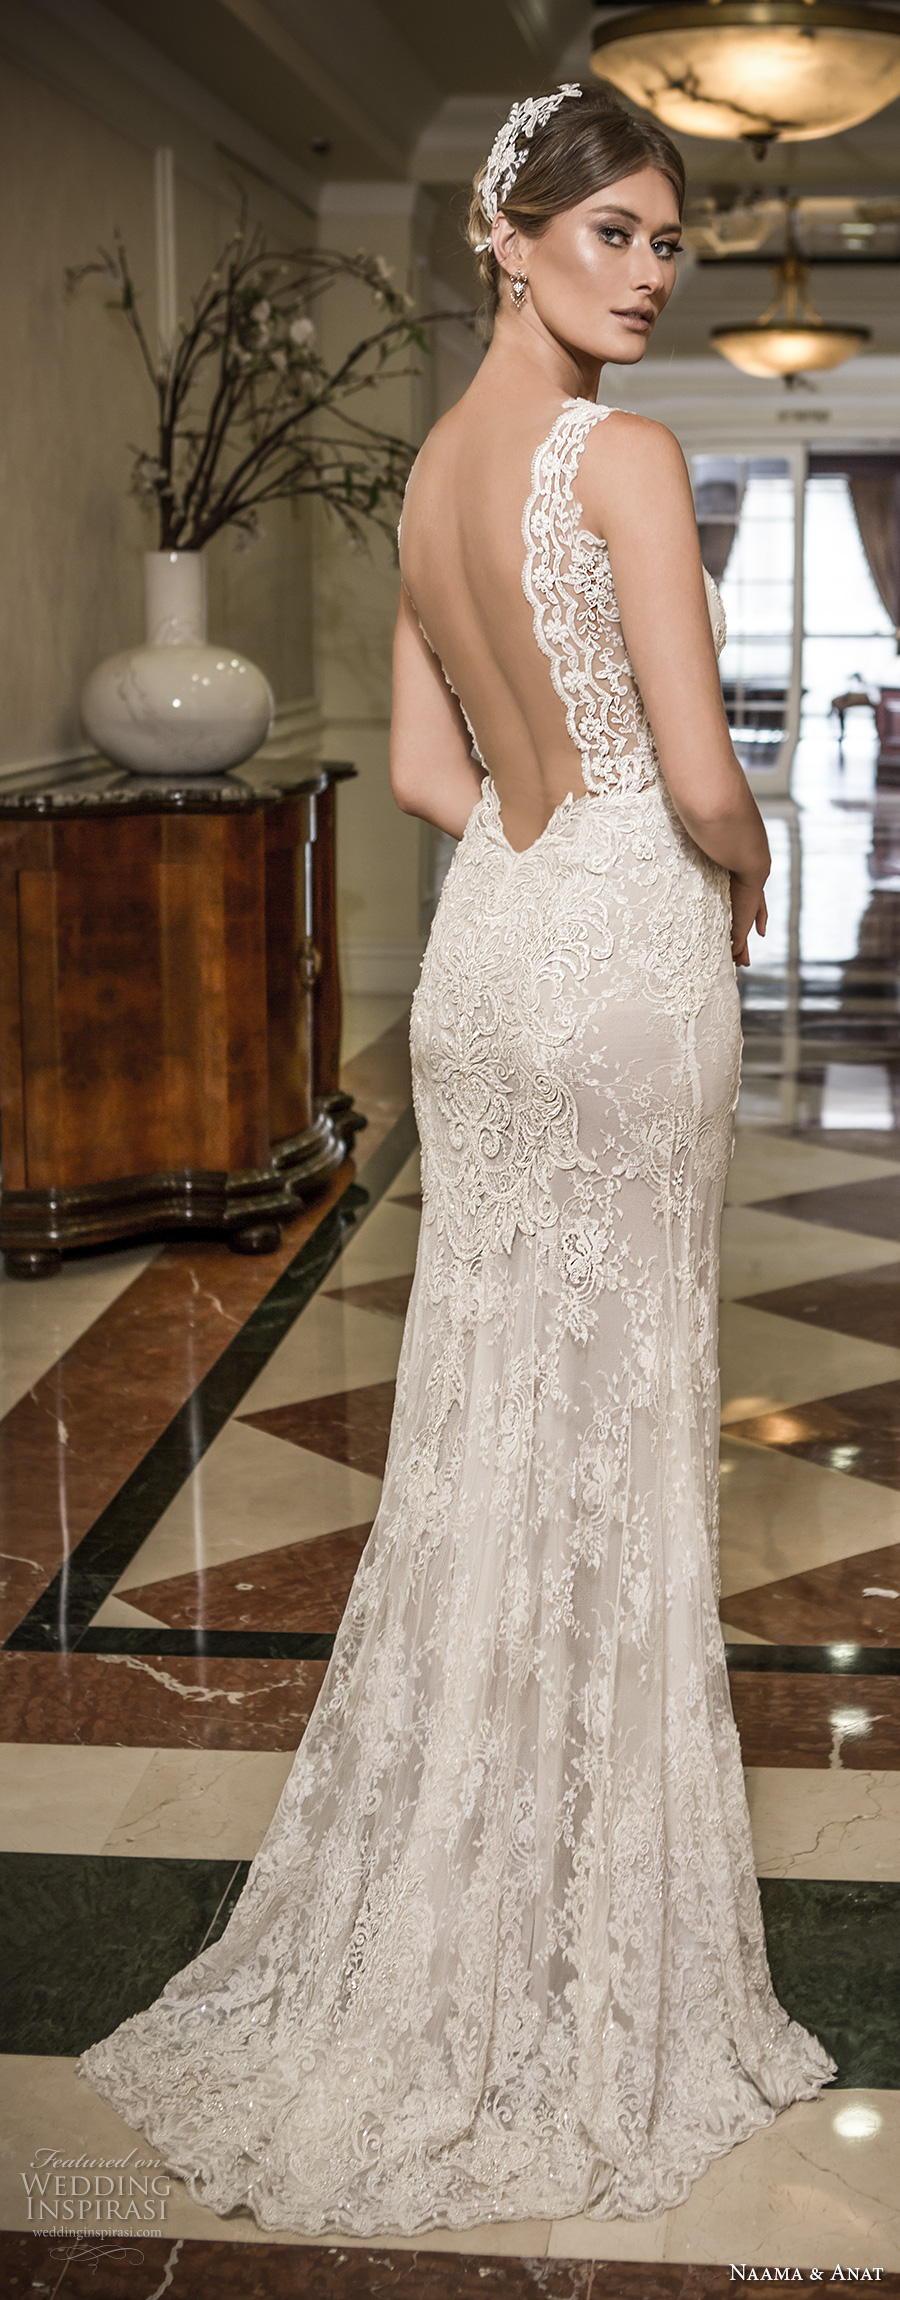 naama and anat 2018 bridal thick lace strap deep plunging sweetheart neckline full embellishment elegant sheath wedding dress open low back sweep train (libertas) bv